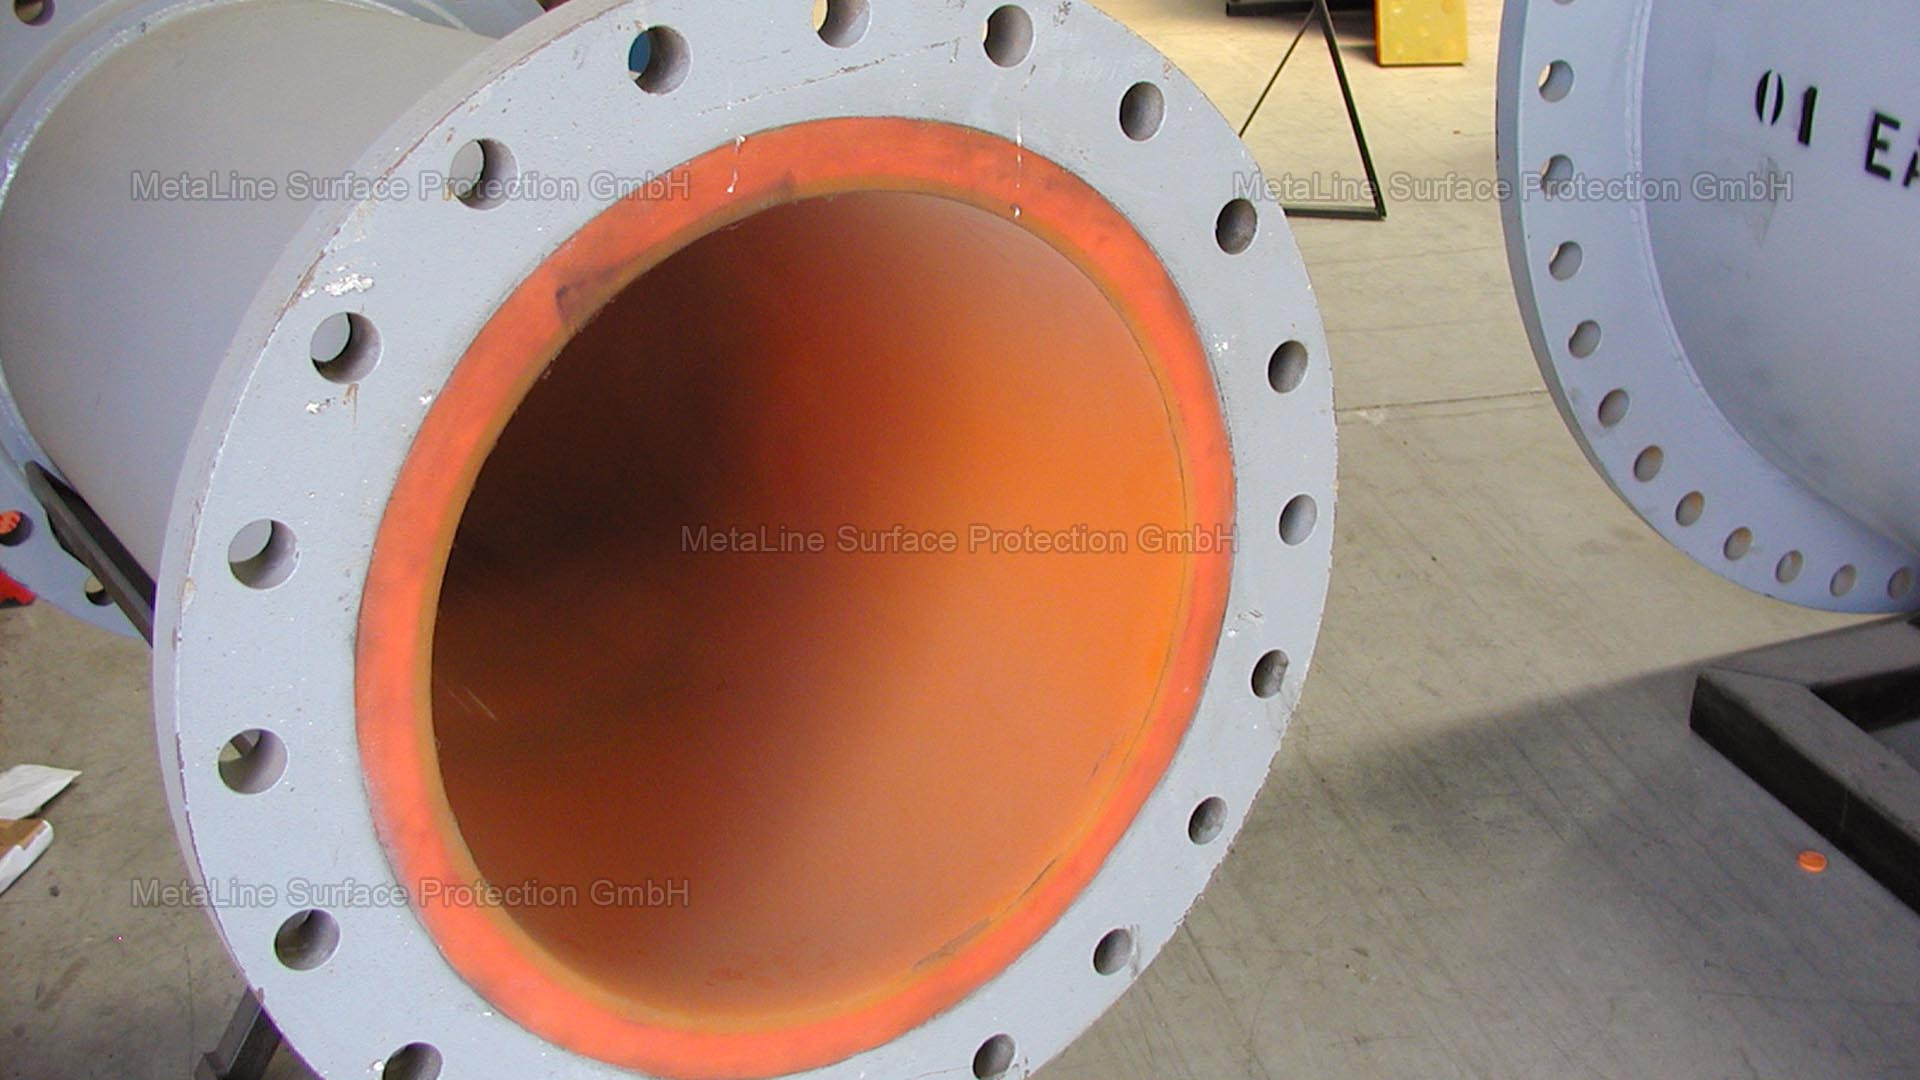 <!-- START: ConditionalContent --><!-- END: ConditionalContent -->   <!-- START: ConditionalContent --> Corrosion; pipe; conduit; inside; outside; wear; sealing; slurry; pipe bend; impact; chemical attack; FRP; pipeline; flange; outside; sealing <!-- END: ConditionalContent -->   <!-- START: ConditionalContent --><!-- END: ConditionalContent -->   <!-- START: ConditionalContent --><!-- END: ConditionalContent -->